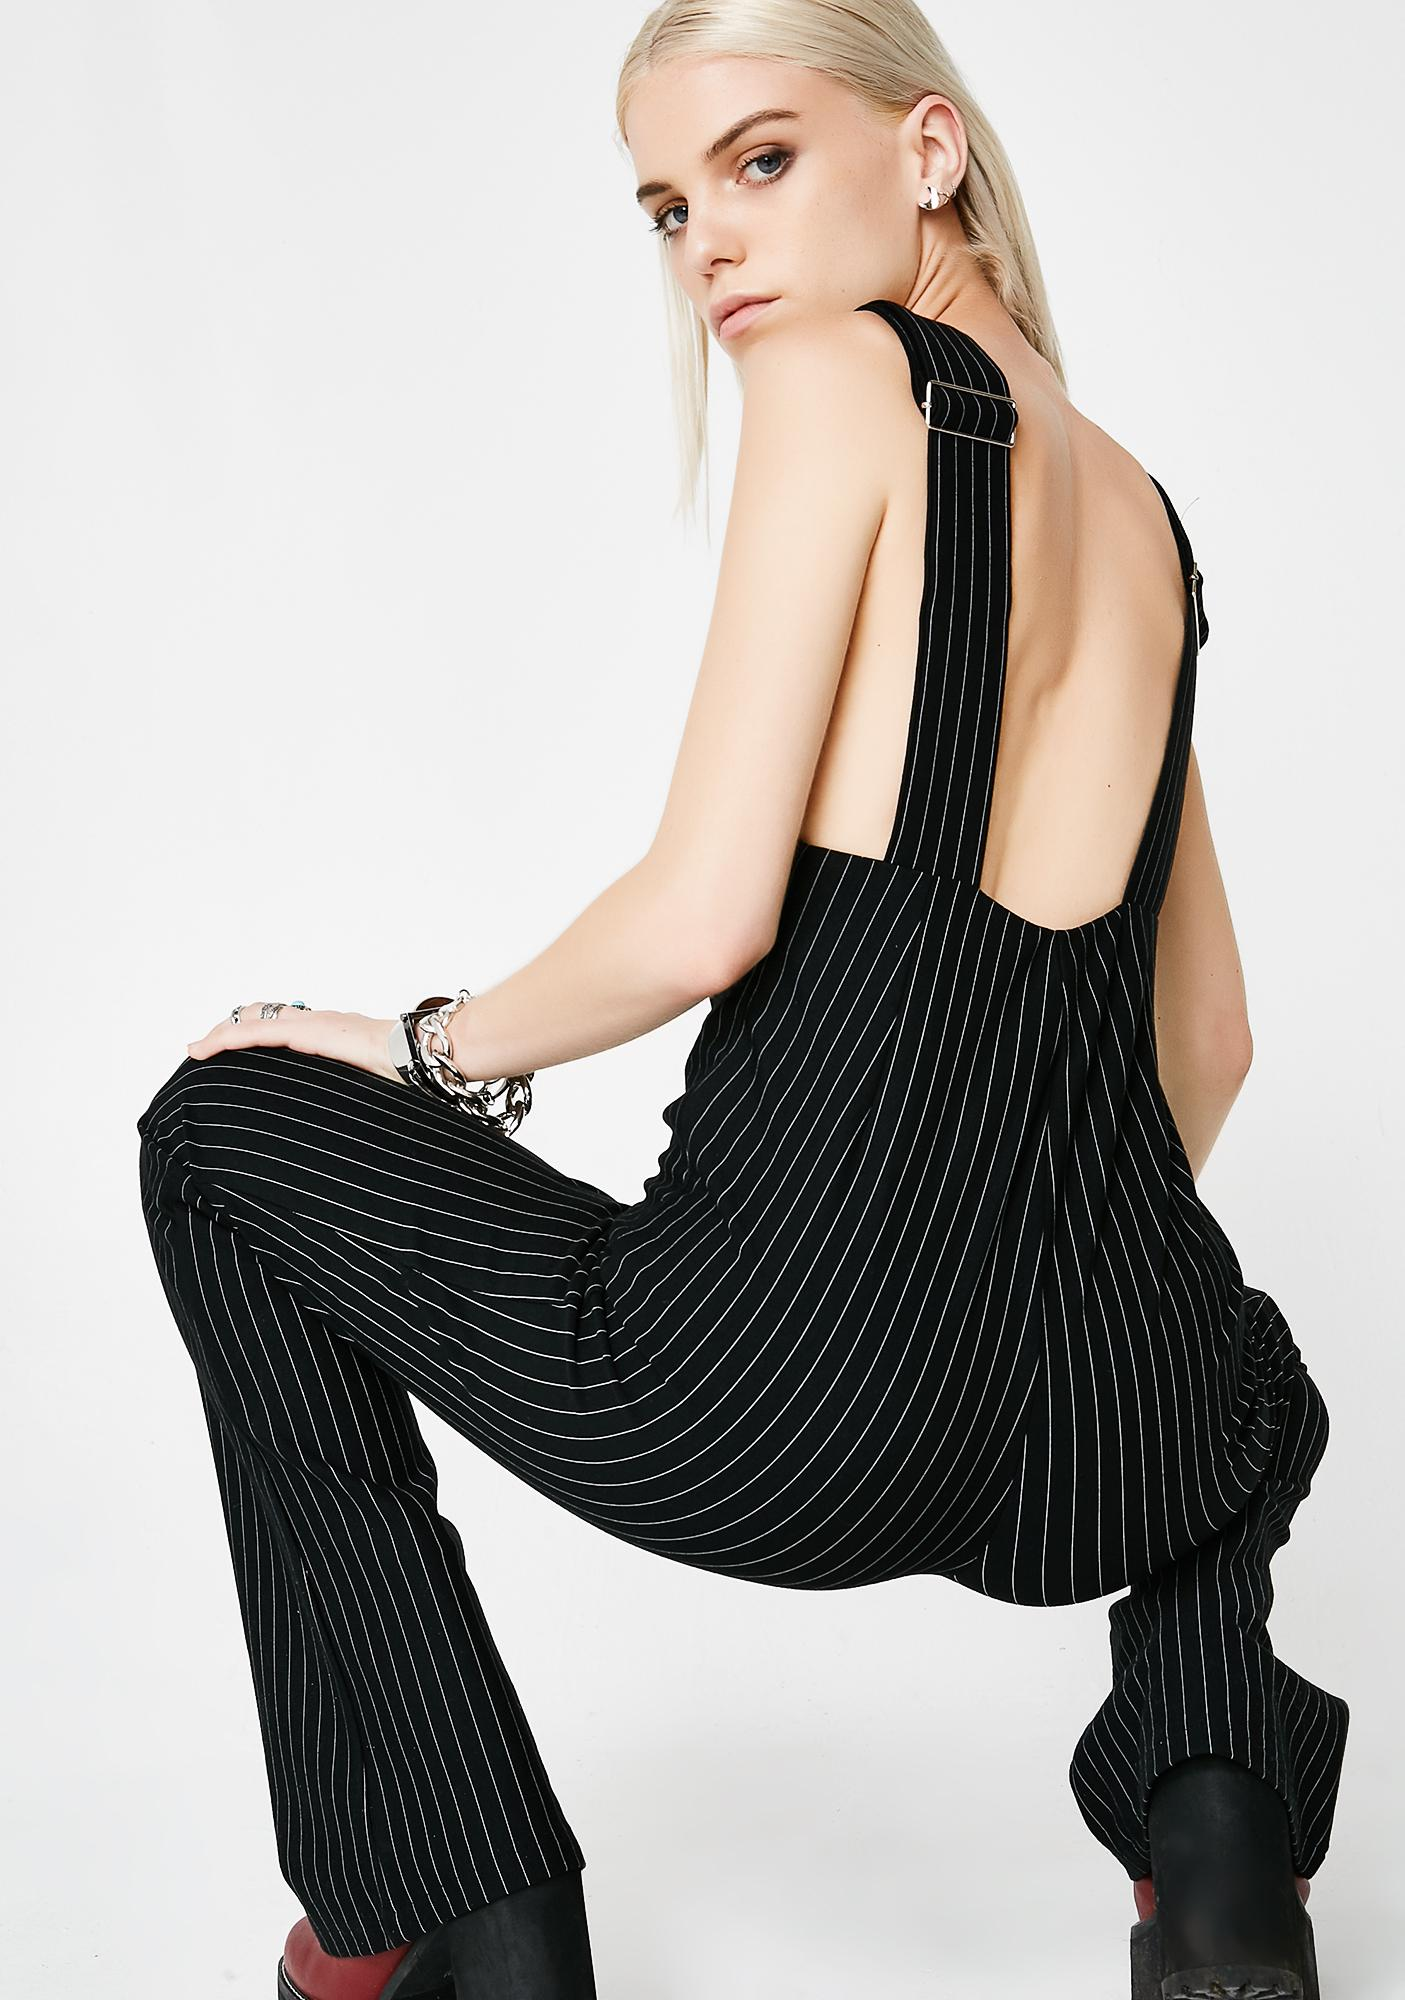 You Don't Know Me Pinstripe Overalls